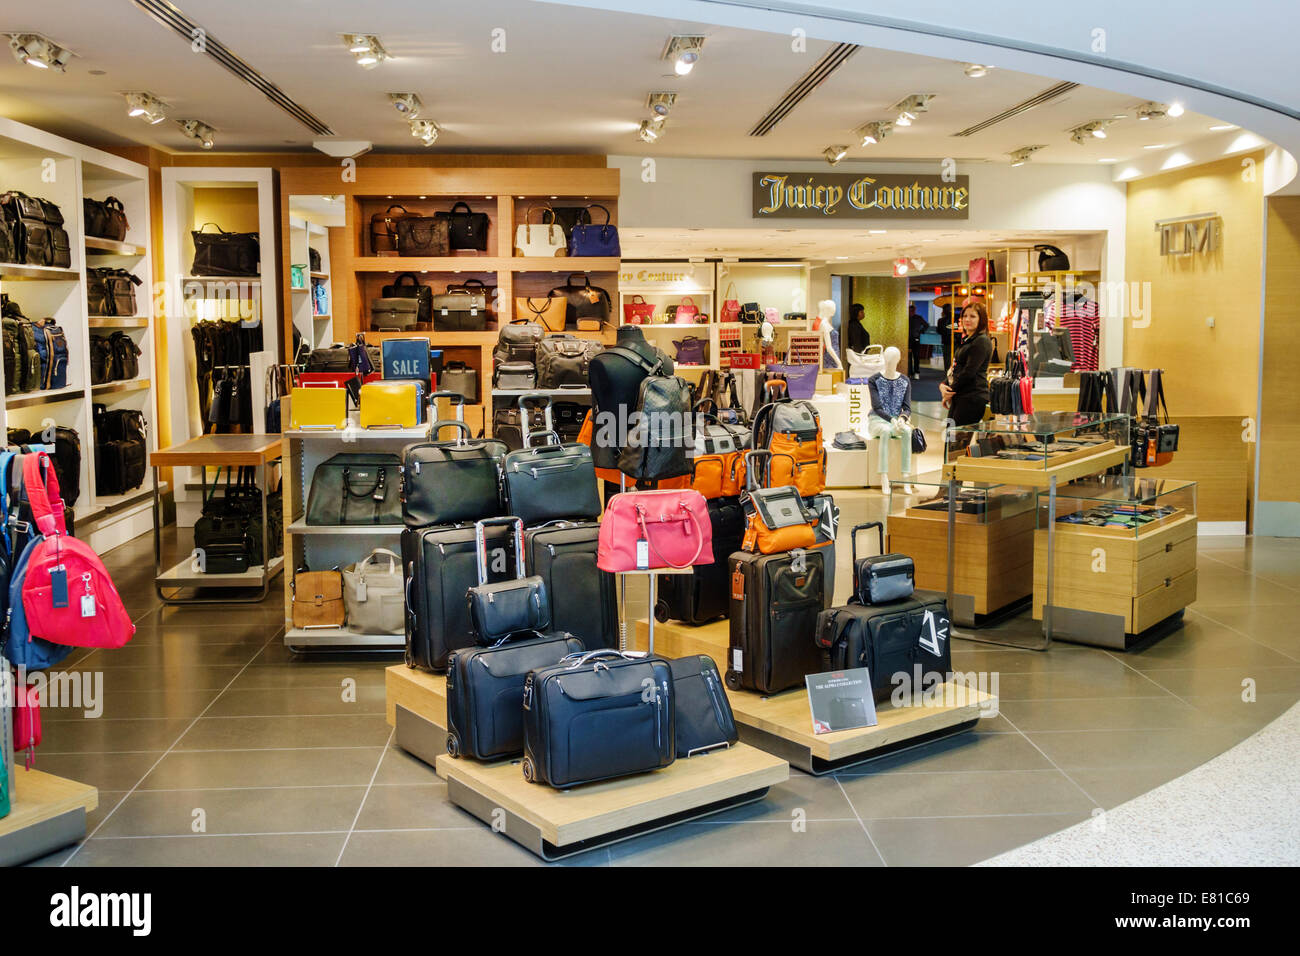 New York New York John F. Kennedy International Airport JFK terminal concourse gate area shopping Juicy Couture - Stock Image